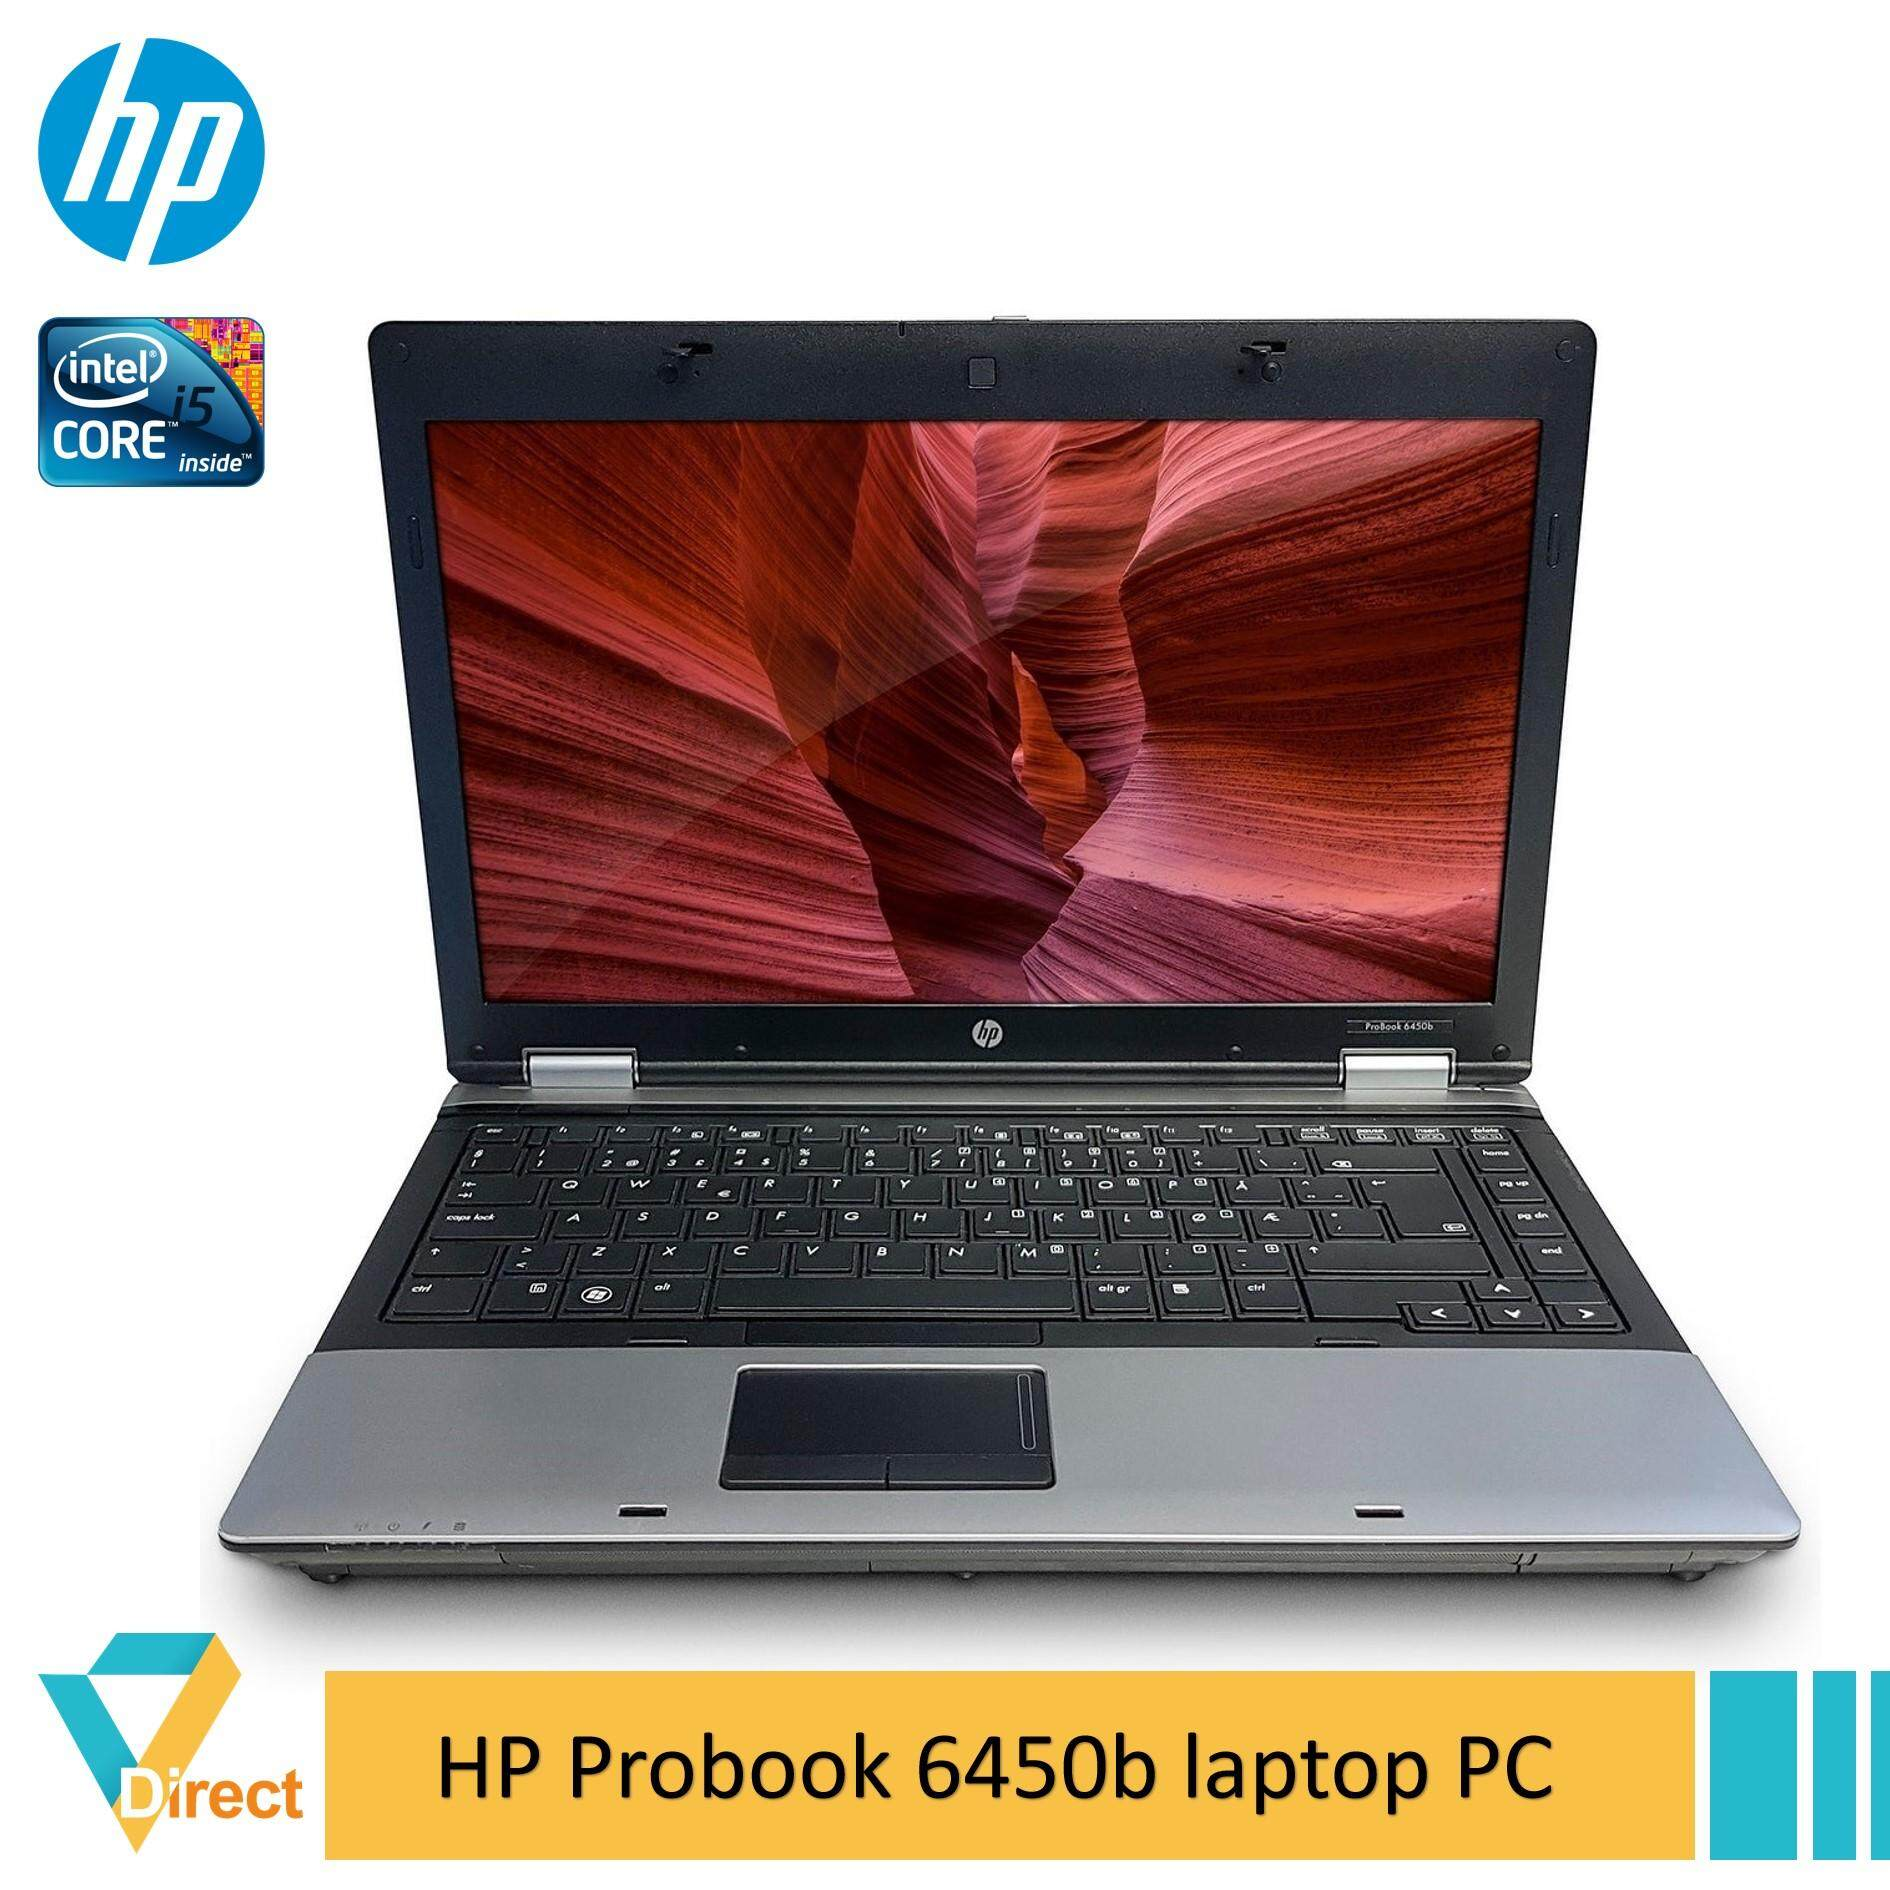 UP to 8GB RAM 960GB SSD HP ProBook 6450b laptop PC - also 4GB 250GB 500GB HDD 120GB 240Gb 480GB FULLY refurbished Malaysia